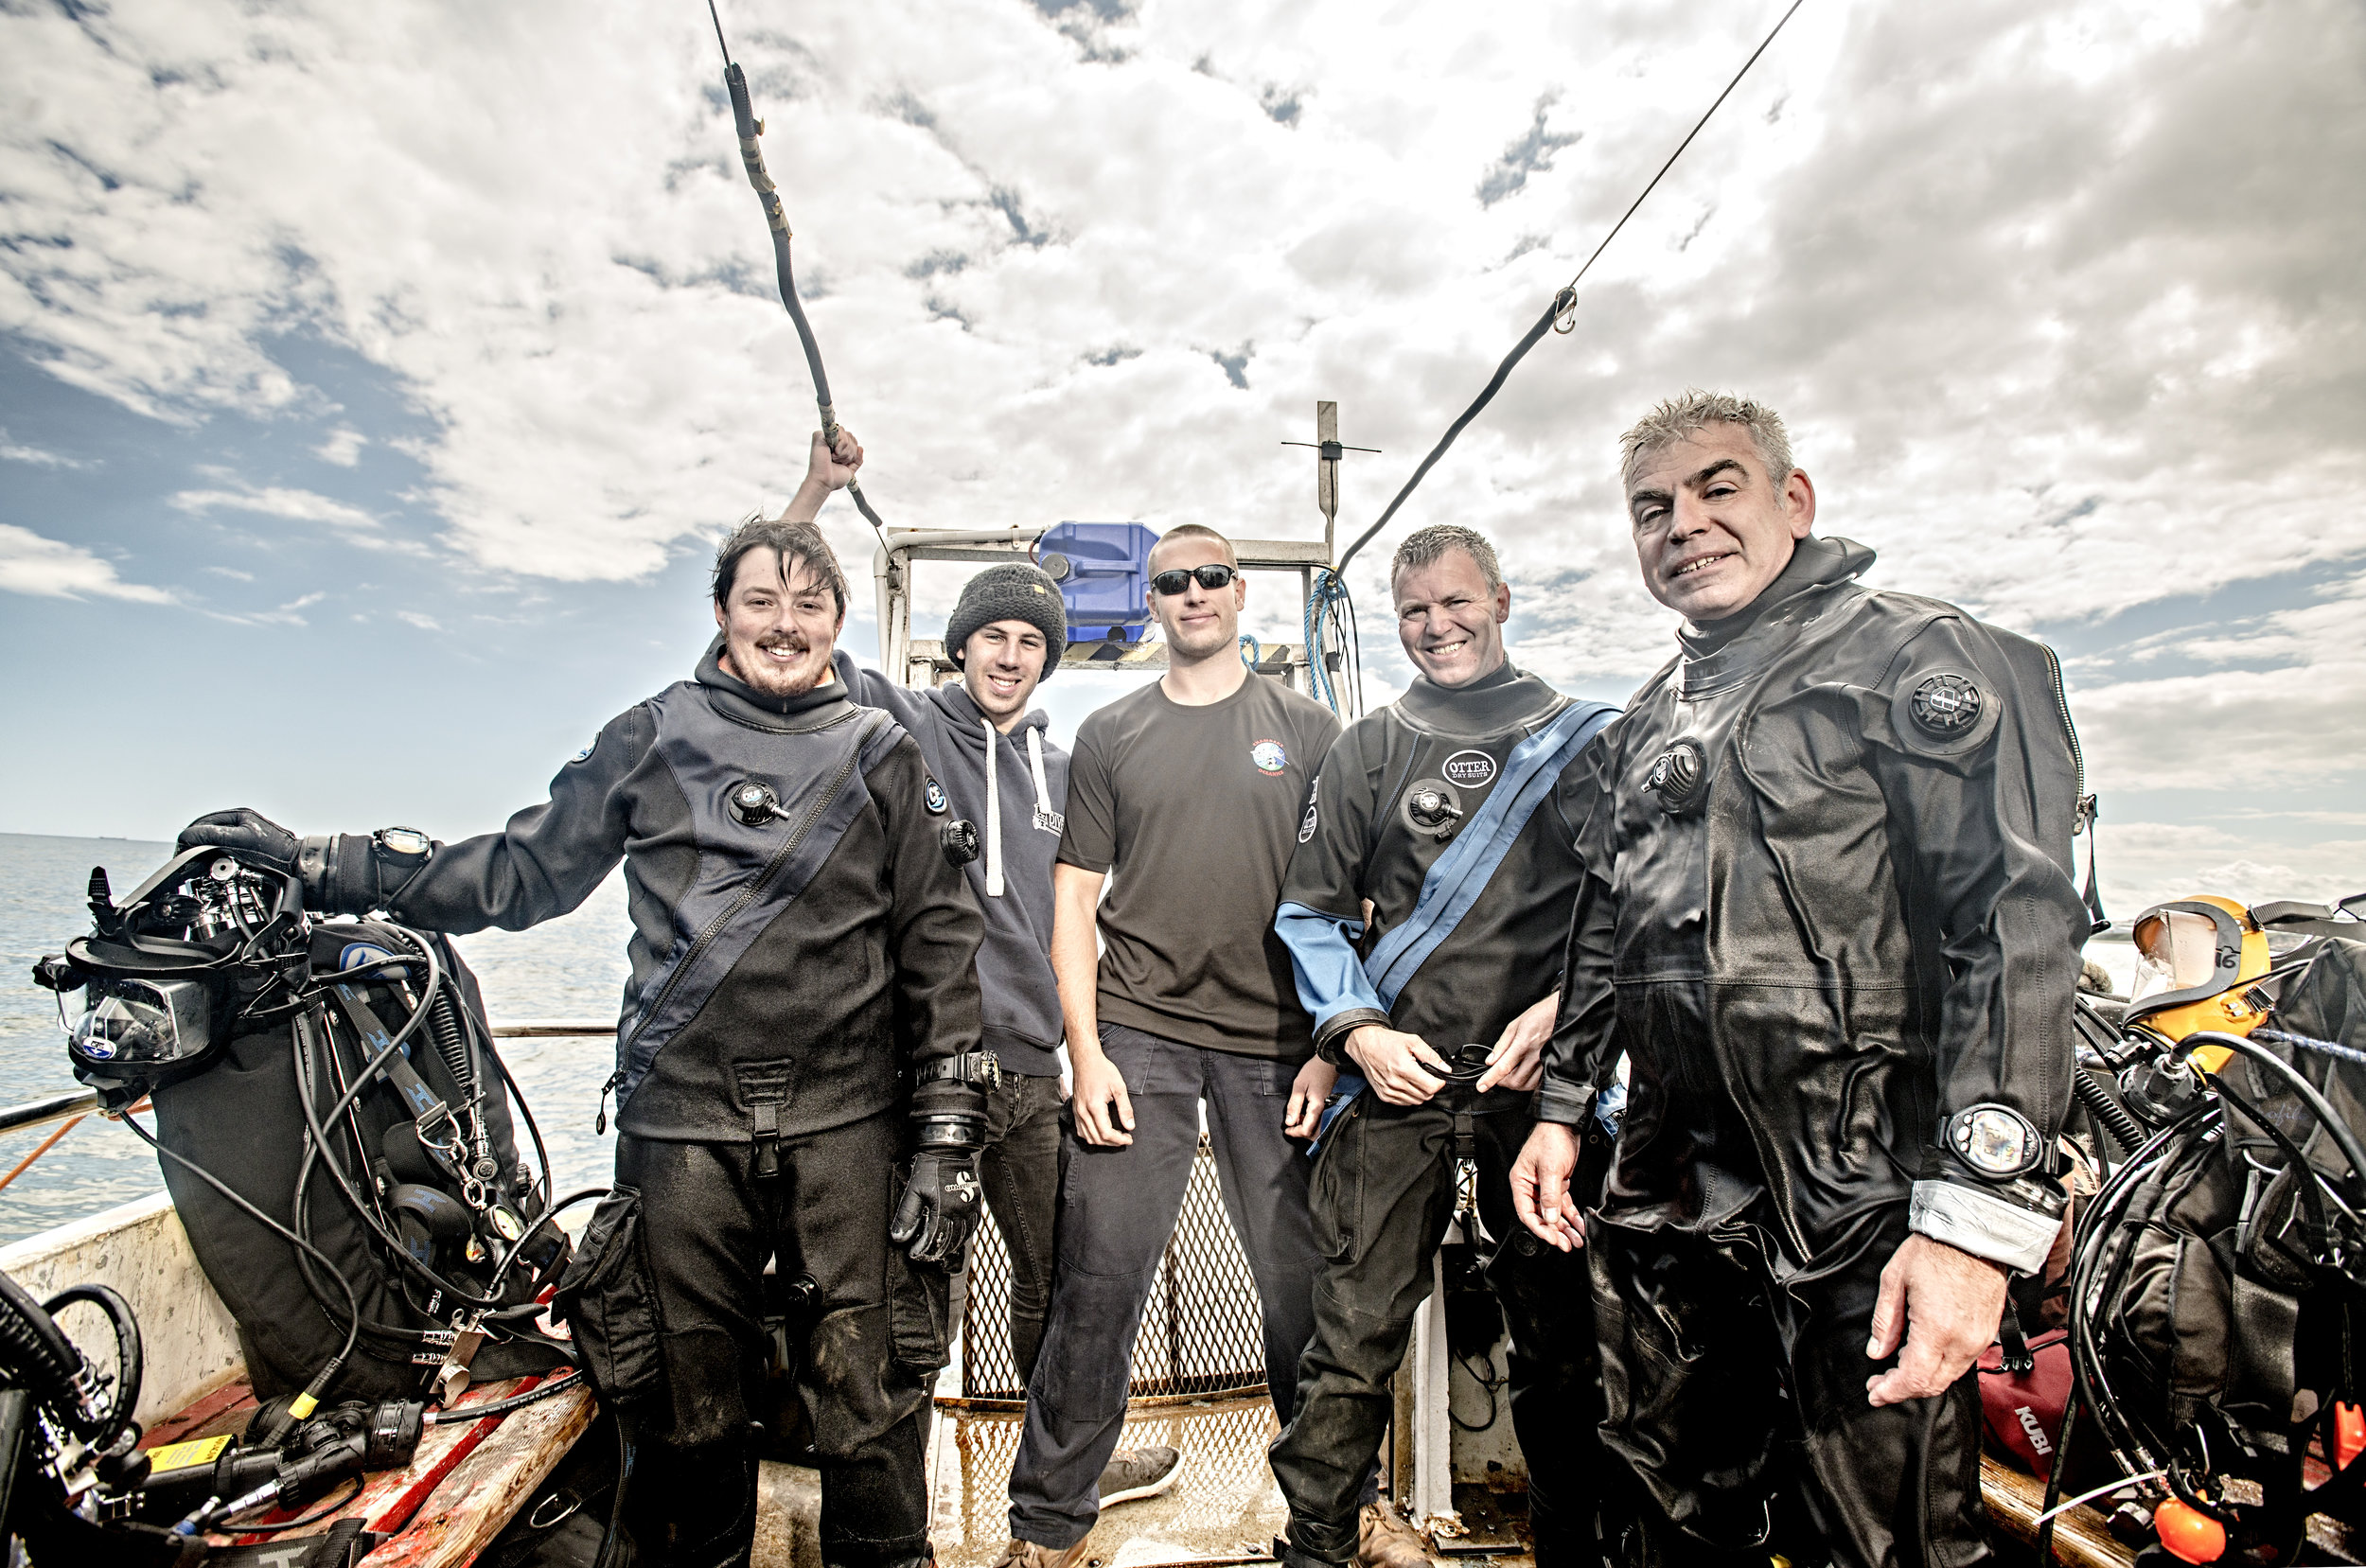 Heading out to Durham - The Wildlife Trust's Dive Team photographed by John Ferguson